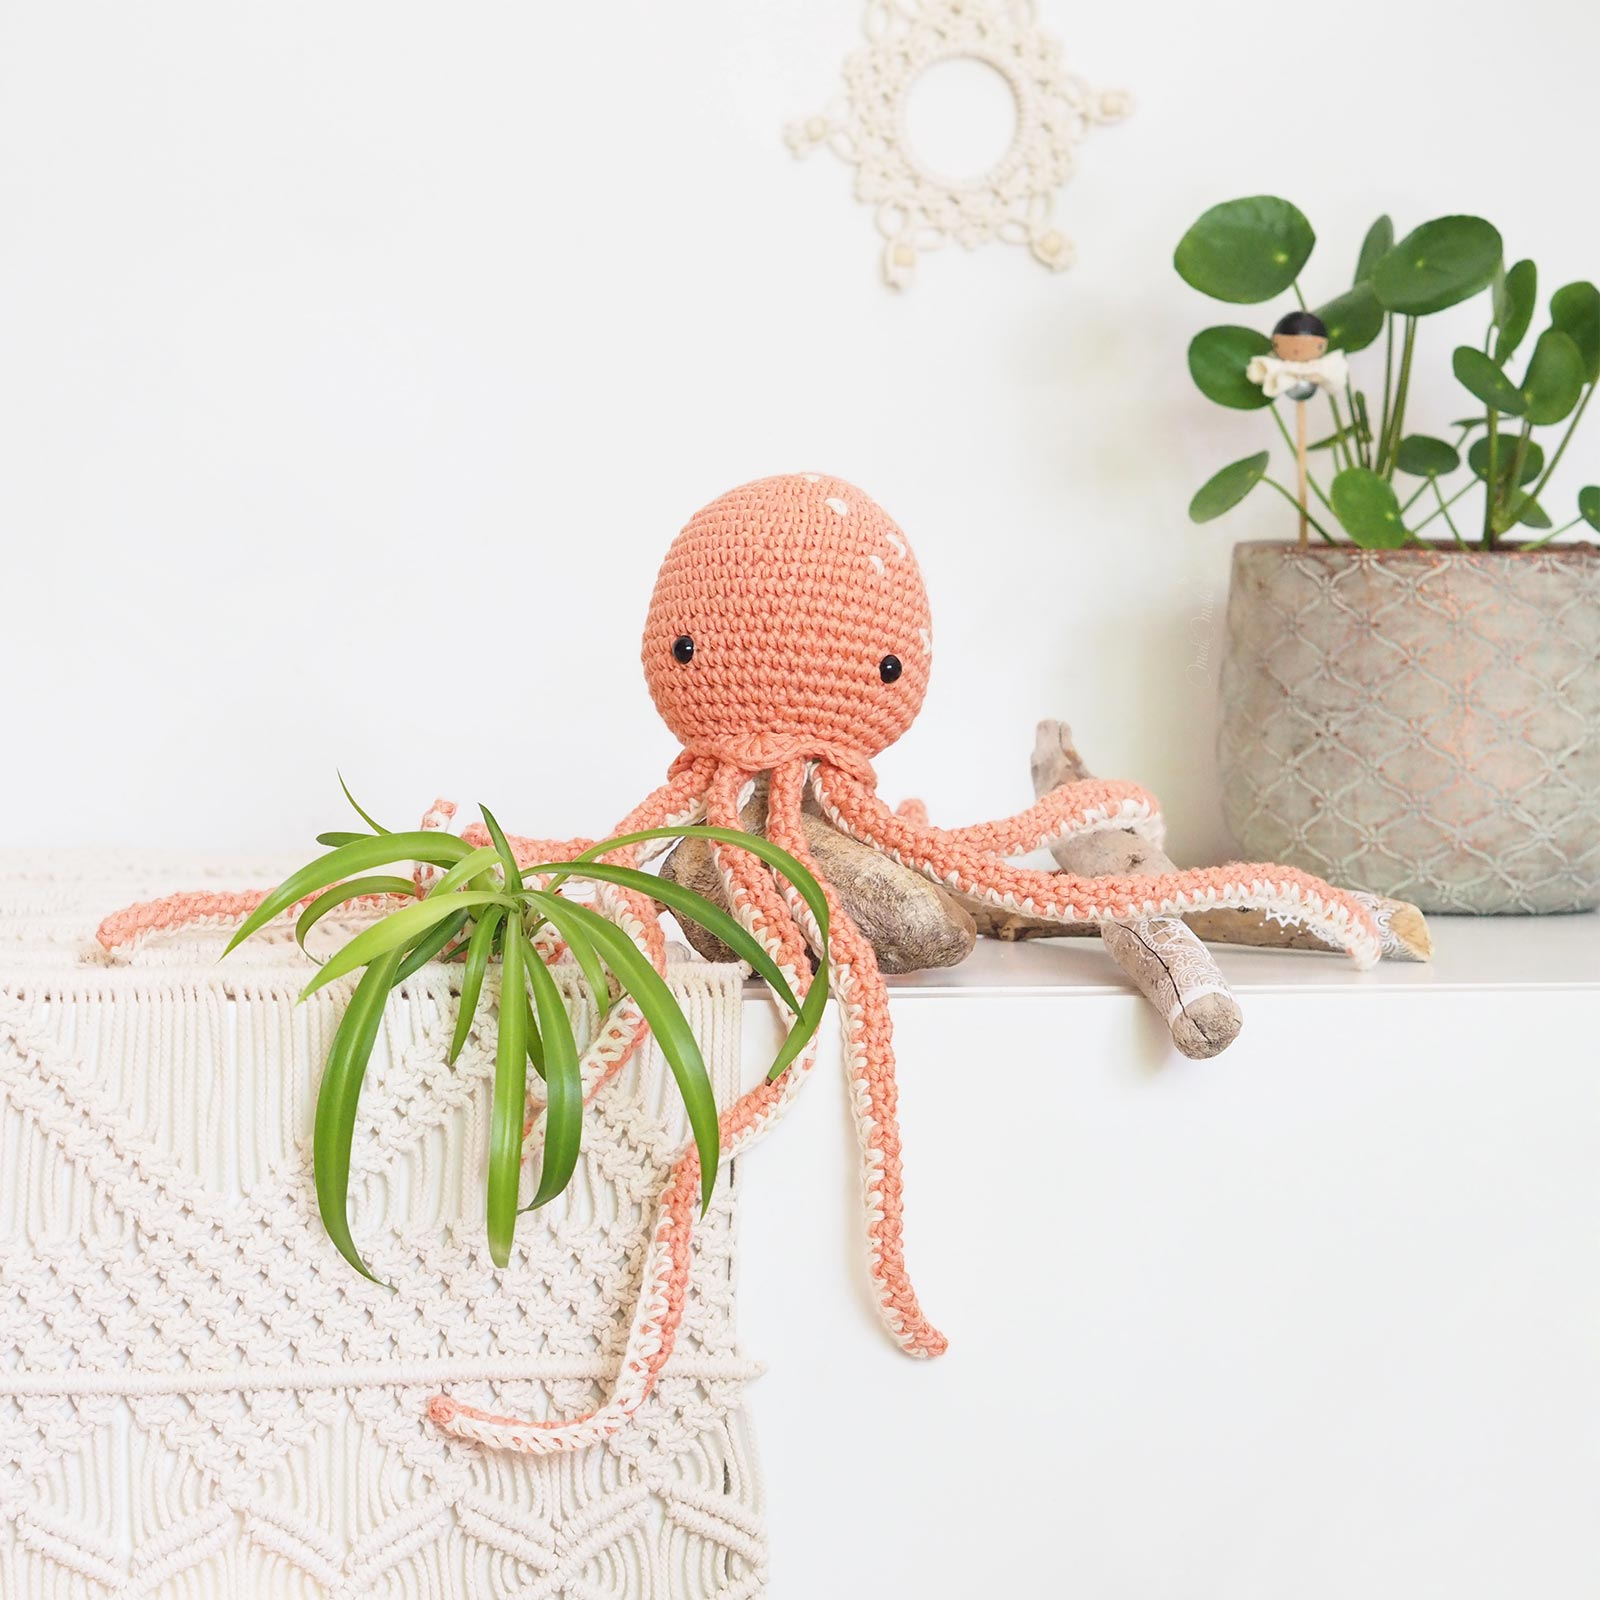 octopus pieuvre poulpe crochet Pima cotton We Are Knitters saumon Pilea Peperomioides laboutiquedemelimelo